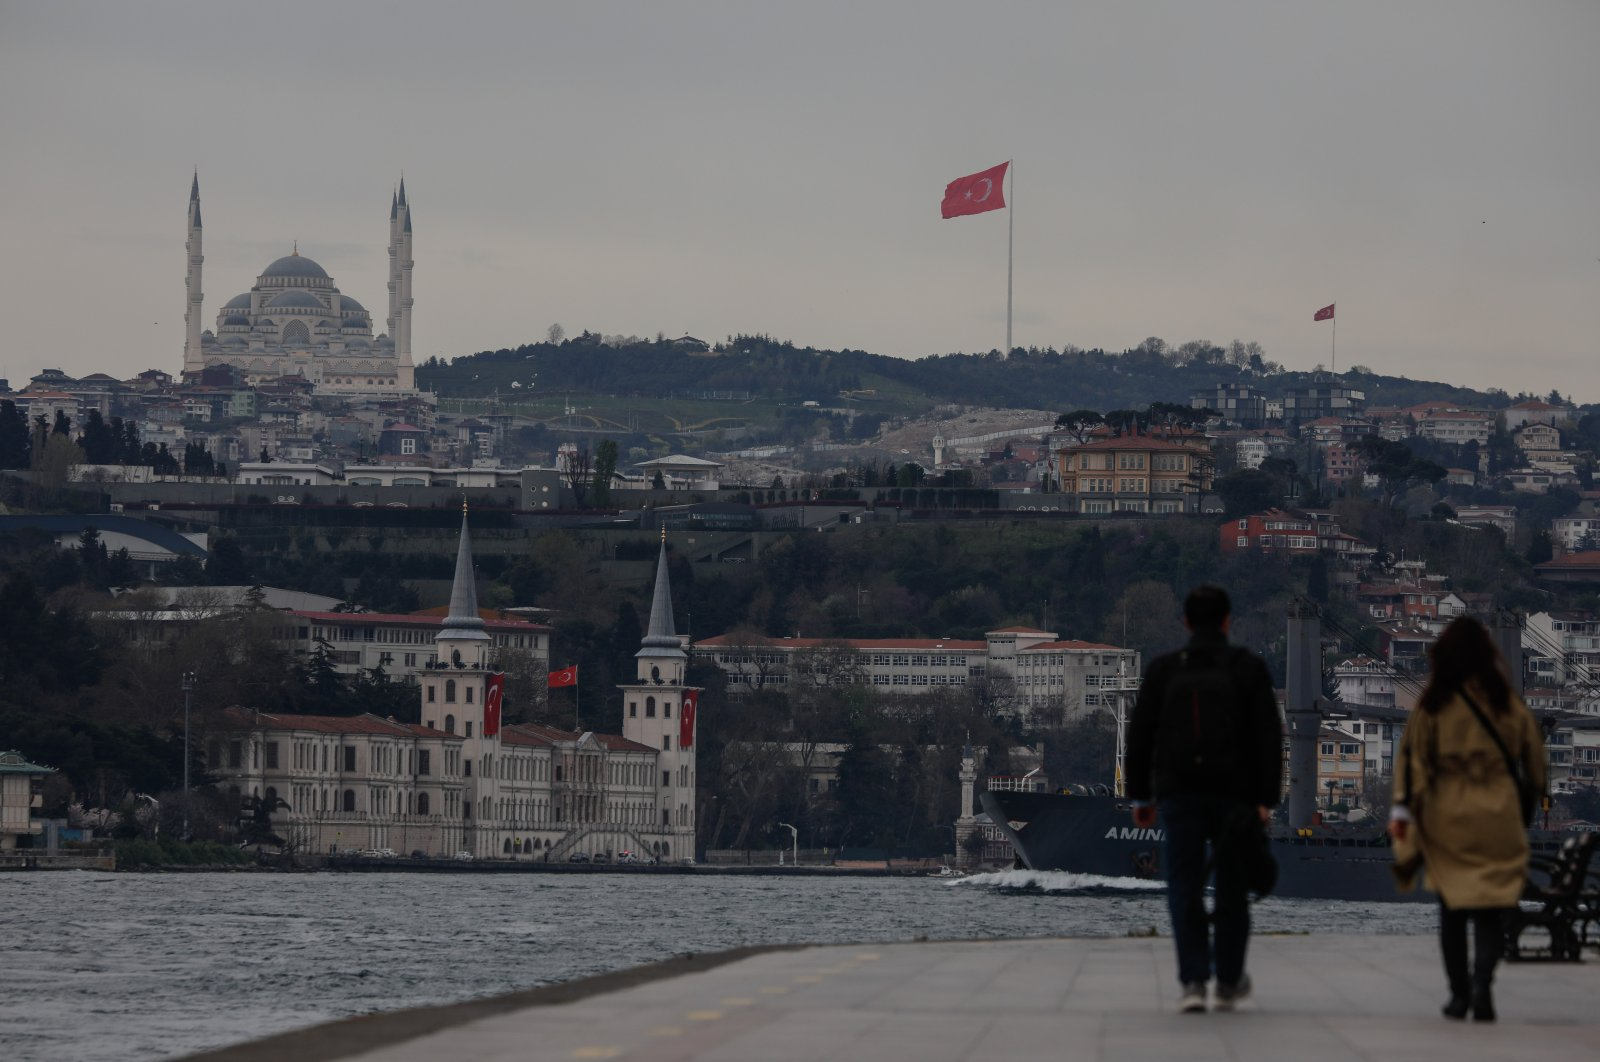 People are seen walking along the Bosporus in Istanbul, Turkey, April 22, 2021. (DHA Photo)